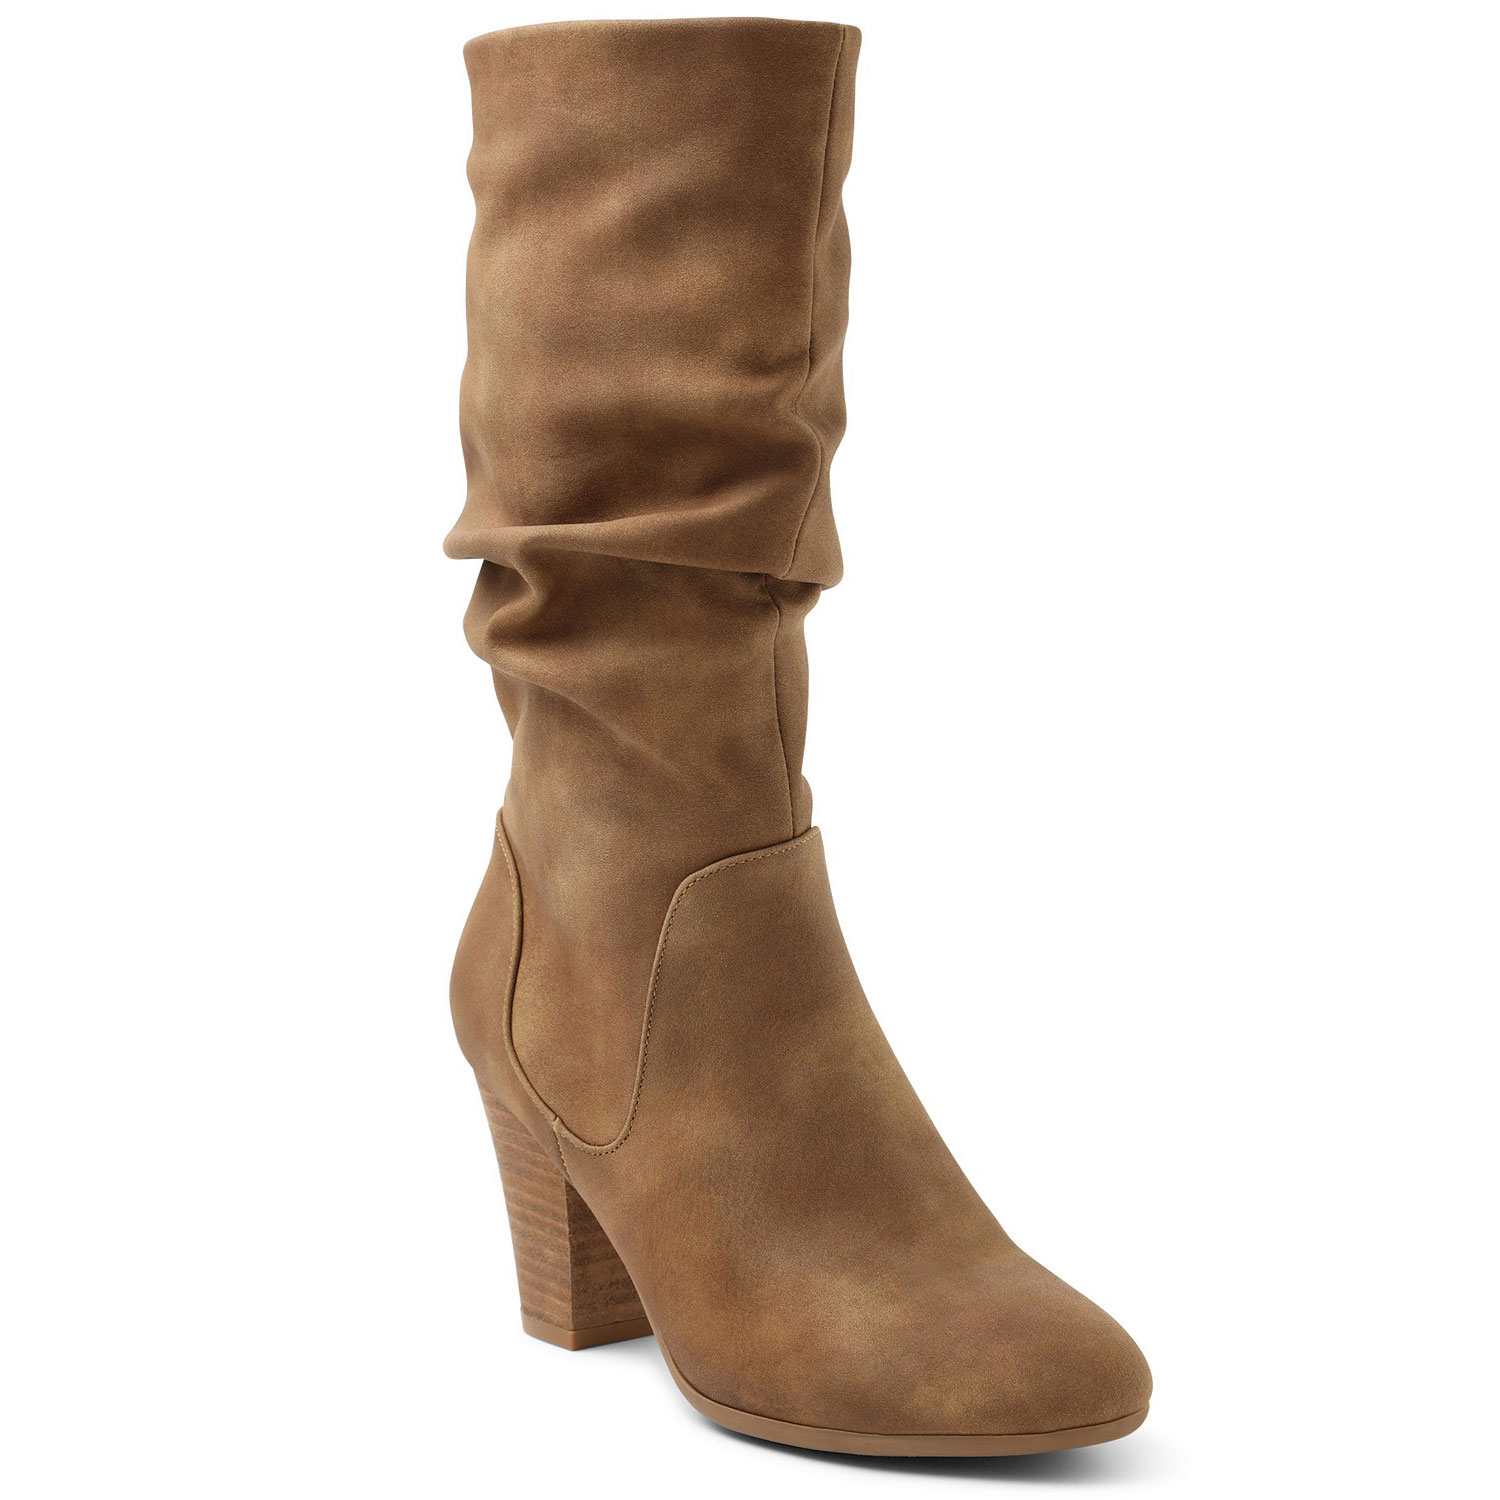 strasburg slouch boots, tan